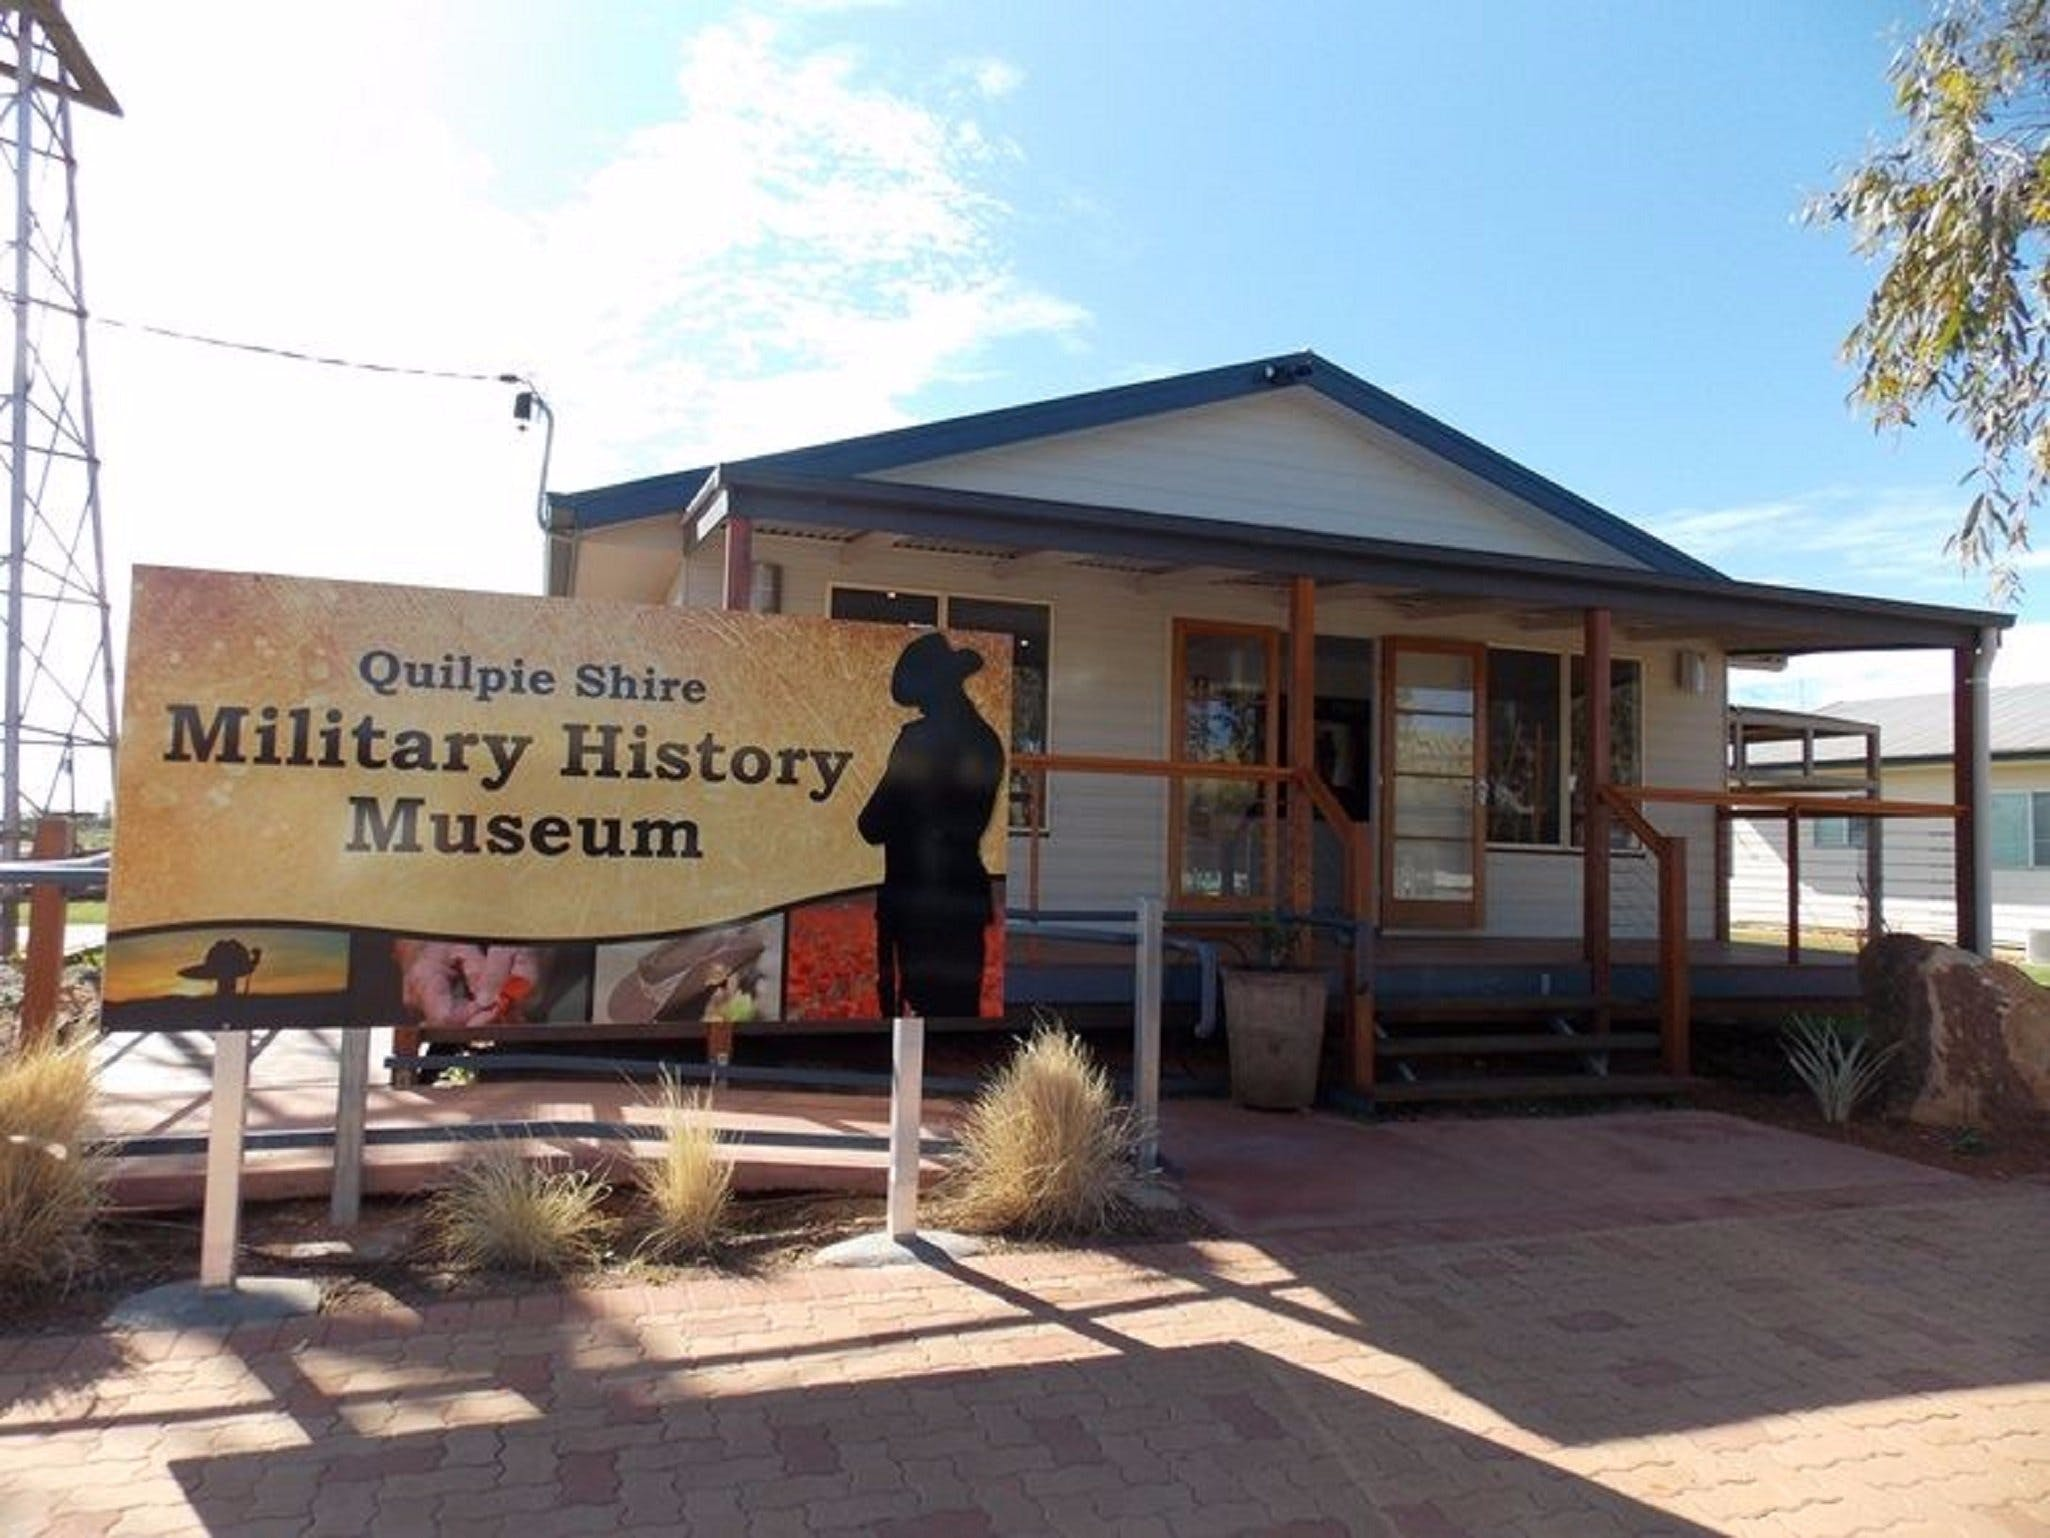 Quilpie Shire Military History Museum - Accommodation Perth